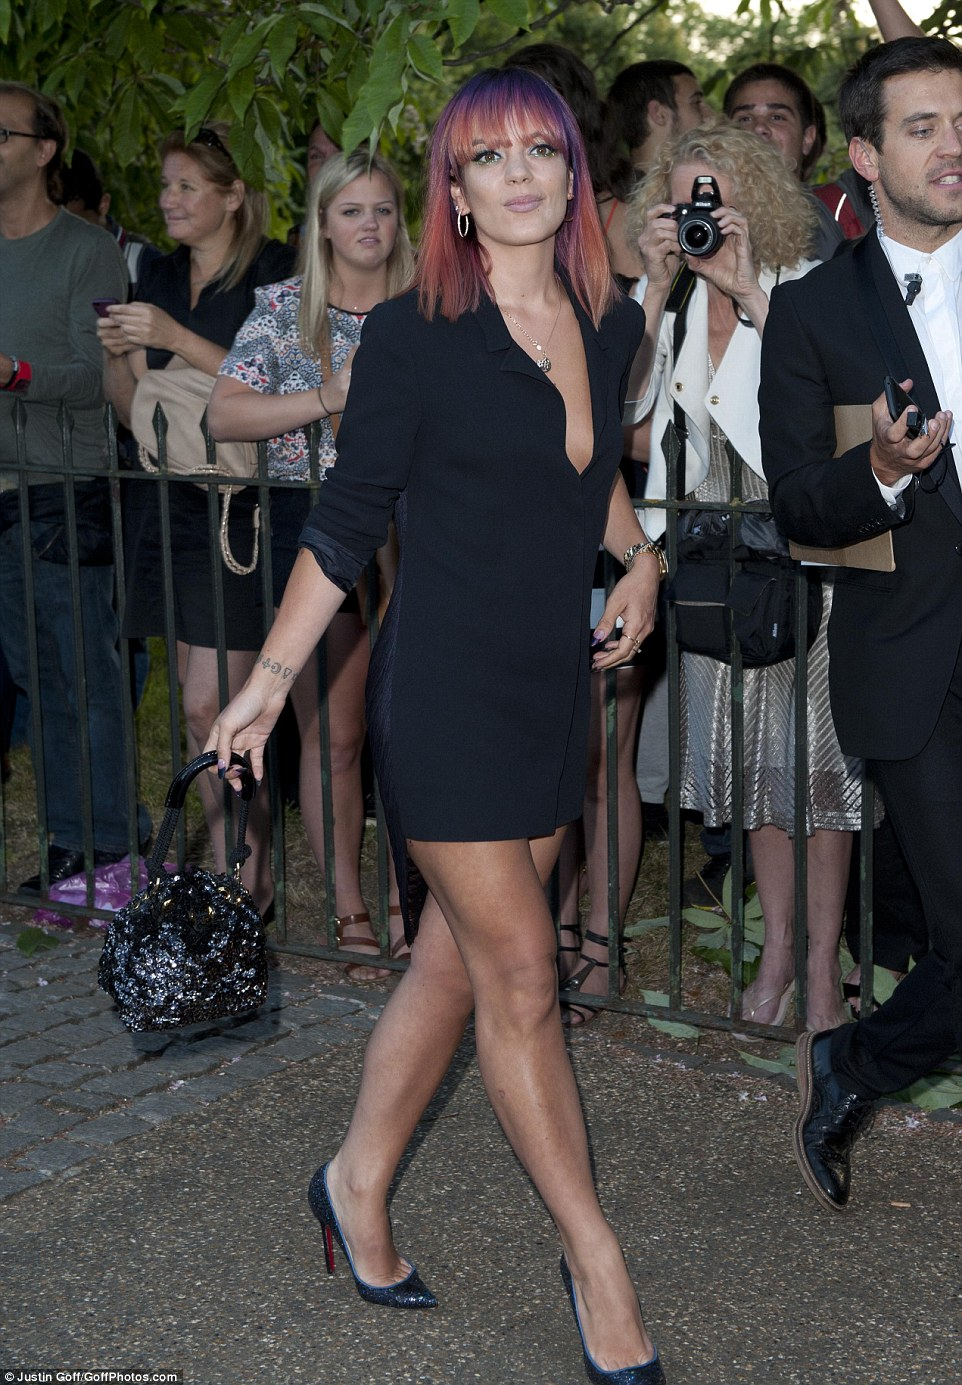 Party time: Lily was enjoying another night out in London on Tuesday evening